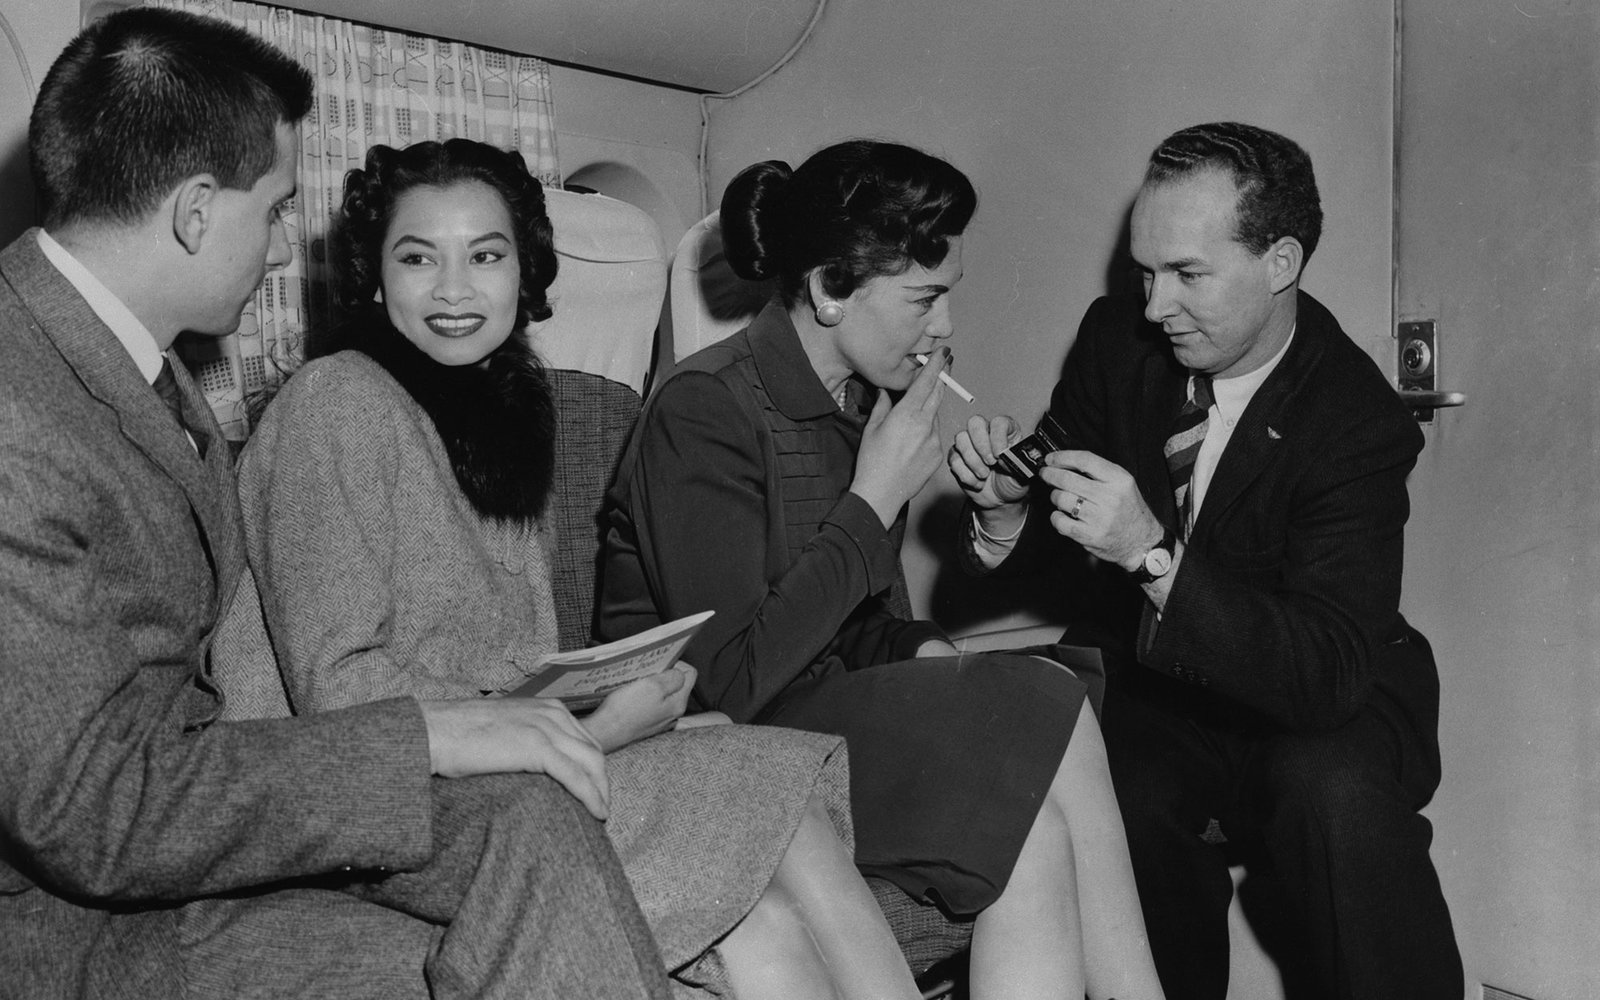 NEW YORK - MID 1950's:  Passengers enjoy a relaxing smoke on a Transocean Air lines Boeing 377 Stratocruiser in the mid 1950's. Transocean Air lines flew between 1946 and 1962 and was a pioneer discount airline. (Photo by Michael Ochs Archive/Getty Images